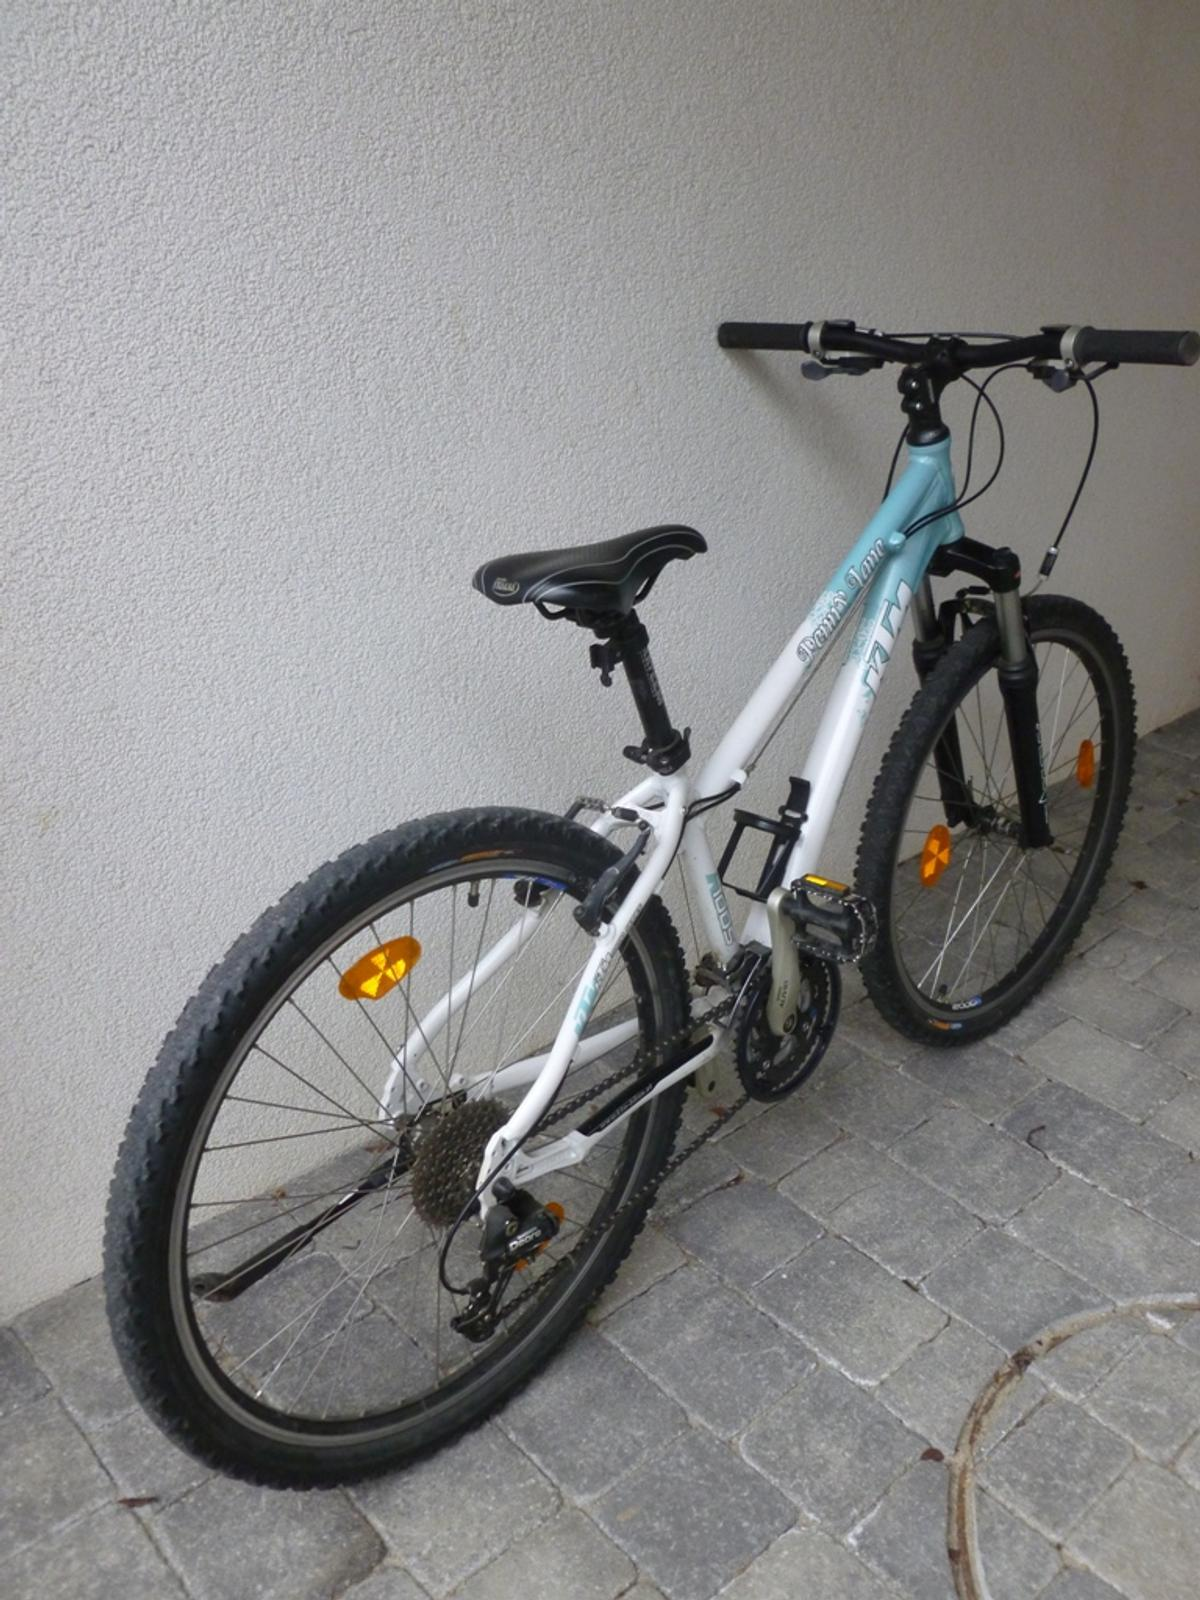 mountainbike ktm penny lane 26 zoll in 4493 wolfern for for sale shpock. Black Bedroom Furniture Sets. Home Design Ideas